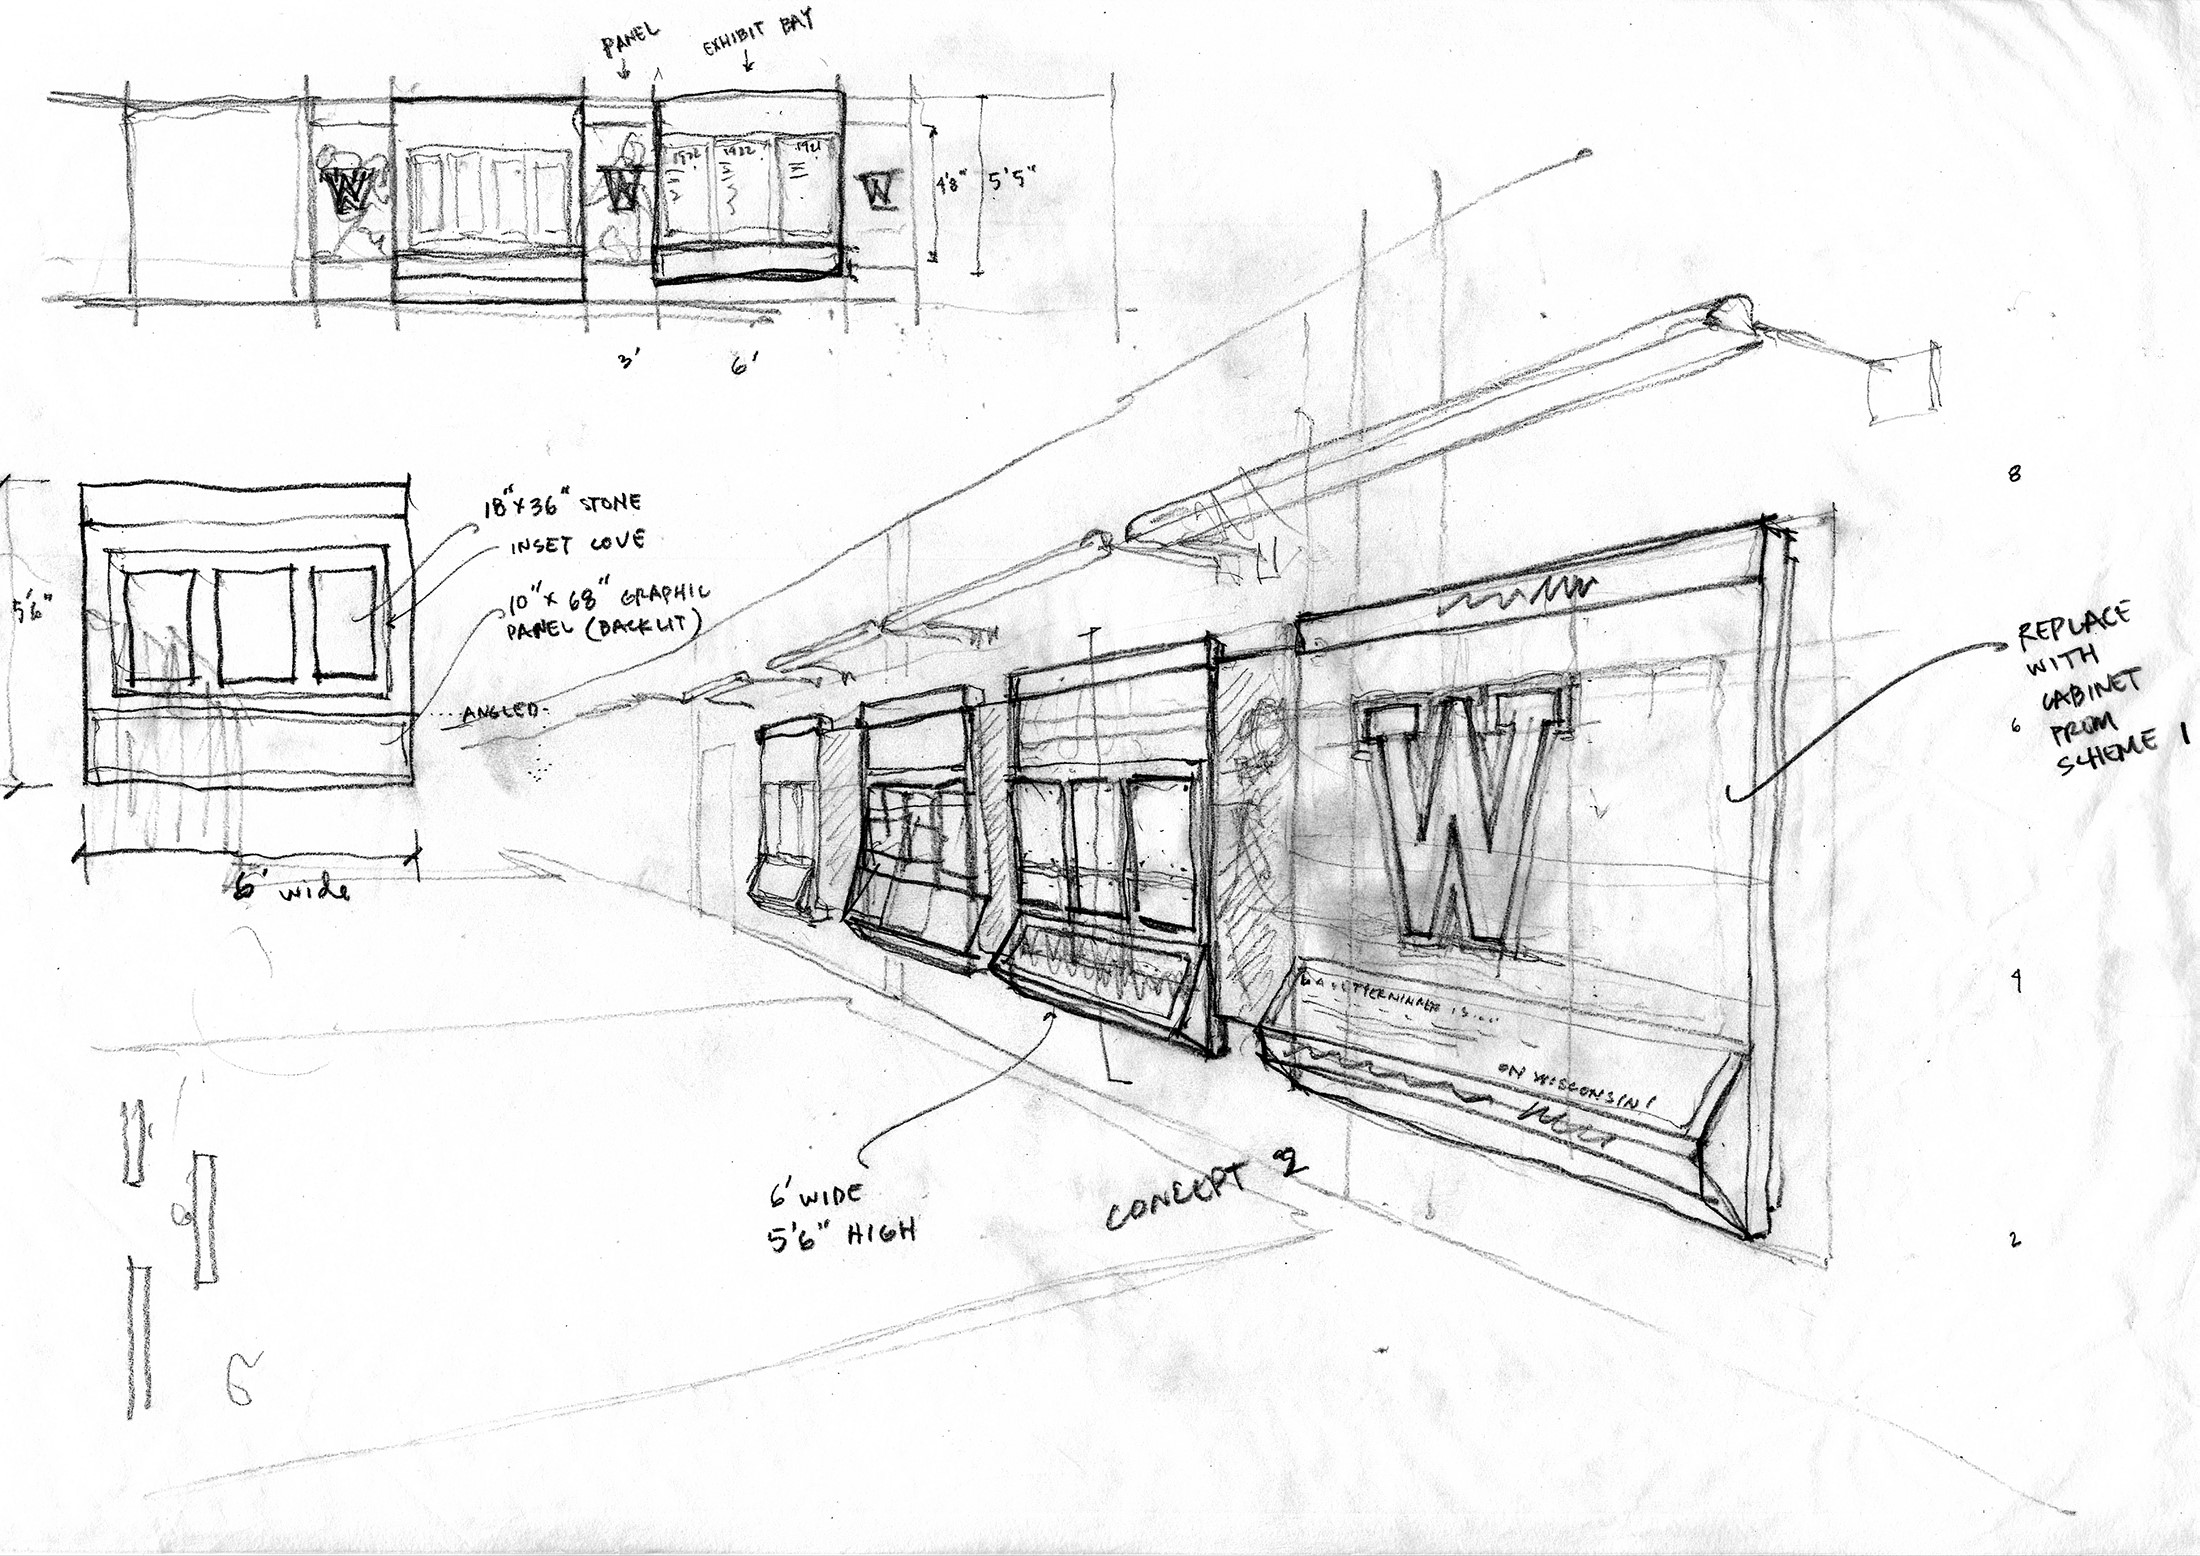 UW corridor sketch 1 version 2 wall mod.jpg